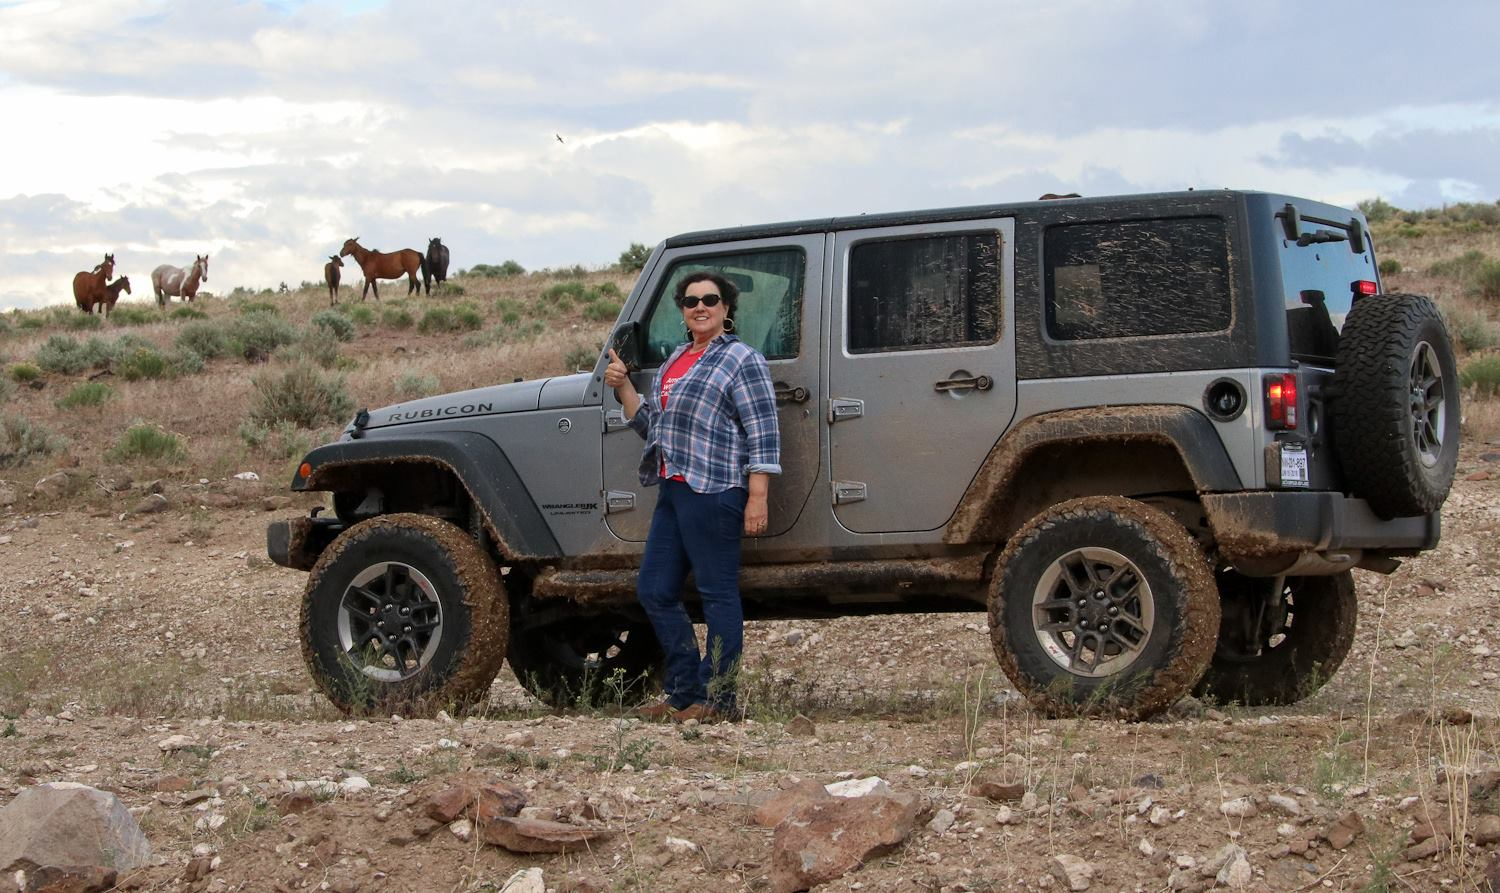 Suzanne Roy, executive director of American Wild Horse Campaign, practicing car etiquette.